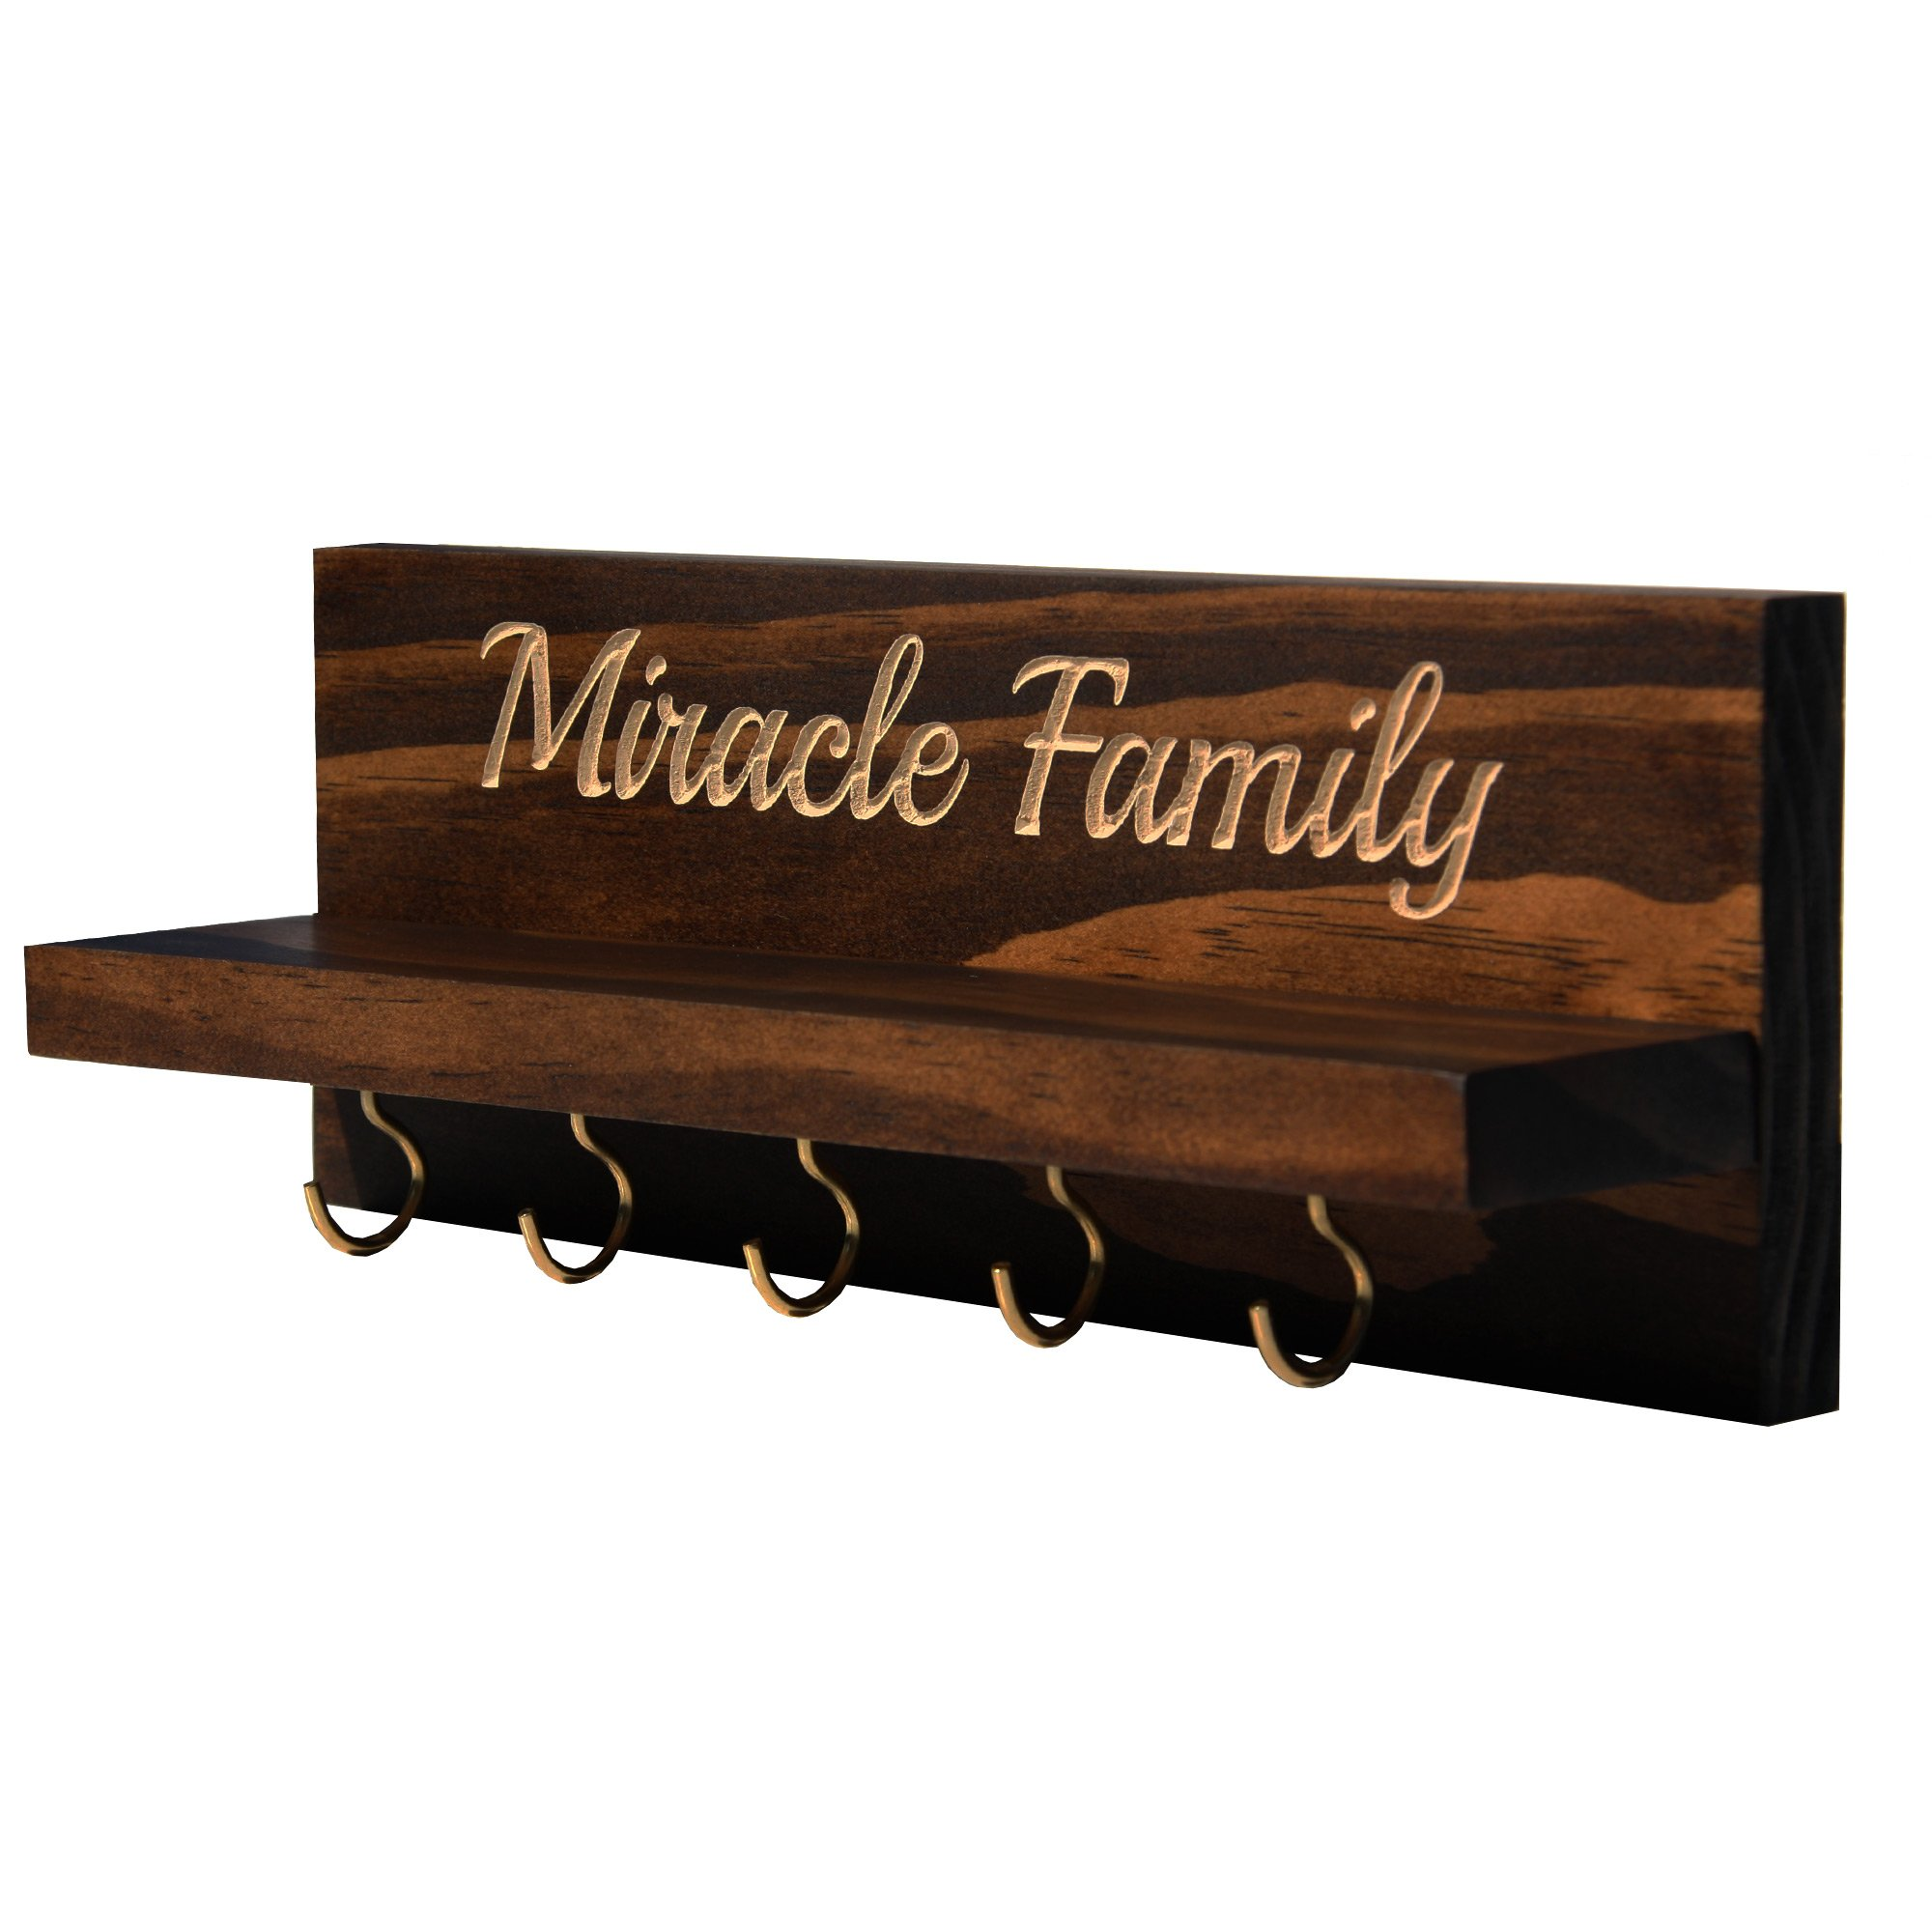 Personalized Wall Mounted Key Holder - Key Rack Holder - Solid Wood